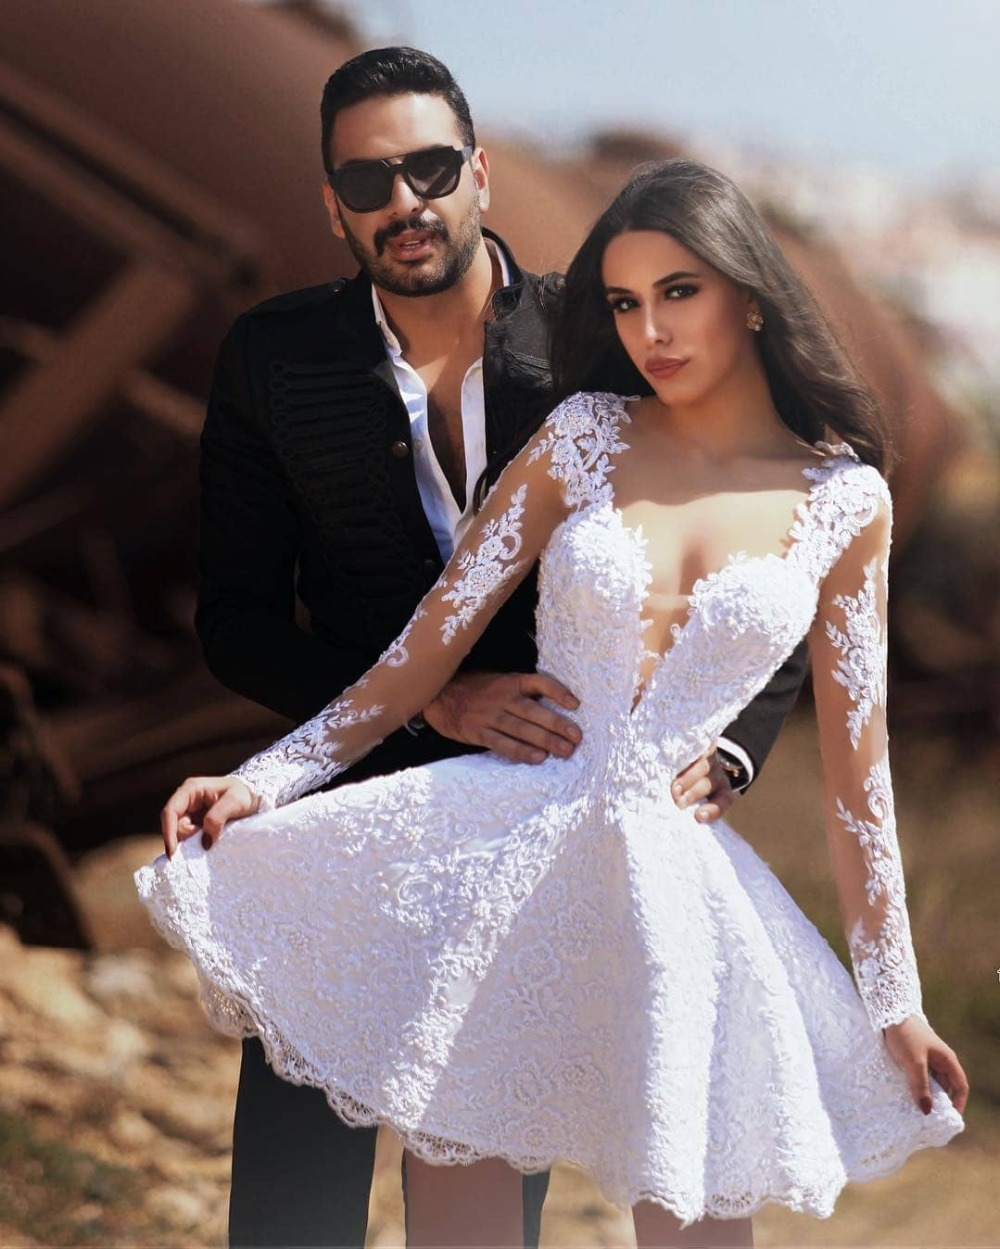 Unique White Short Wedding Dresses With Long Sleeves V Neck Unique Lace  Bridal Gowns Summer Cheap Women Bridal Gowns Wear Sexy